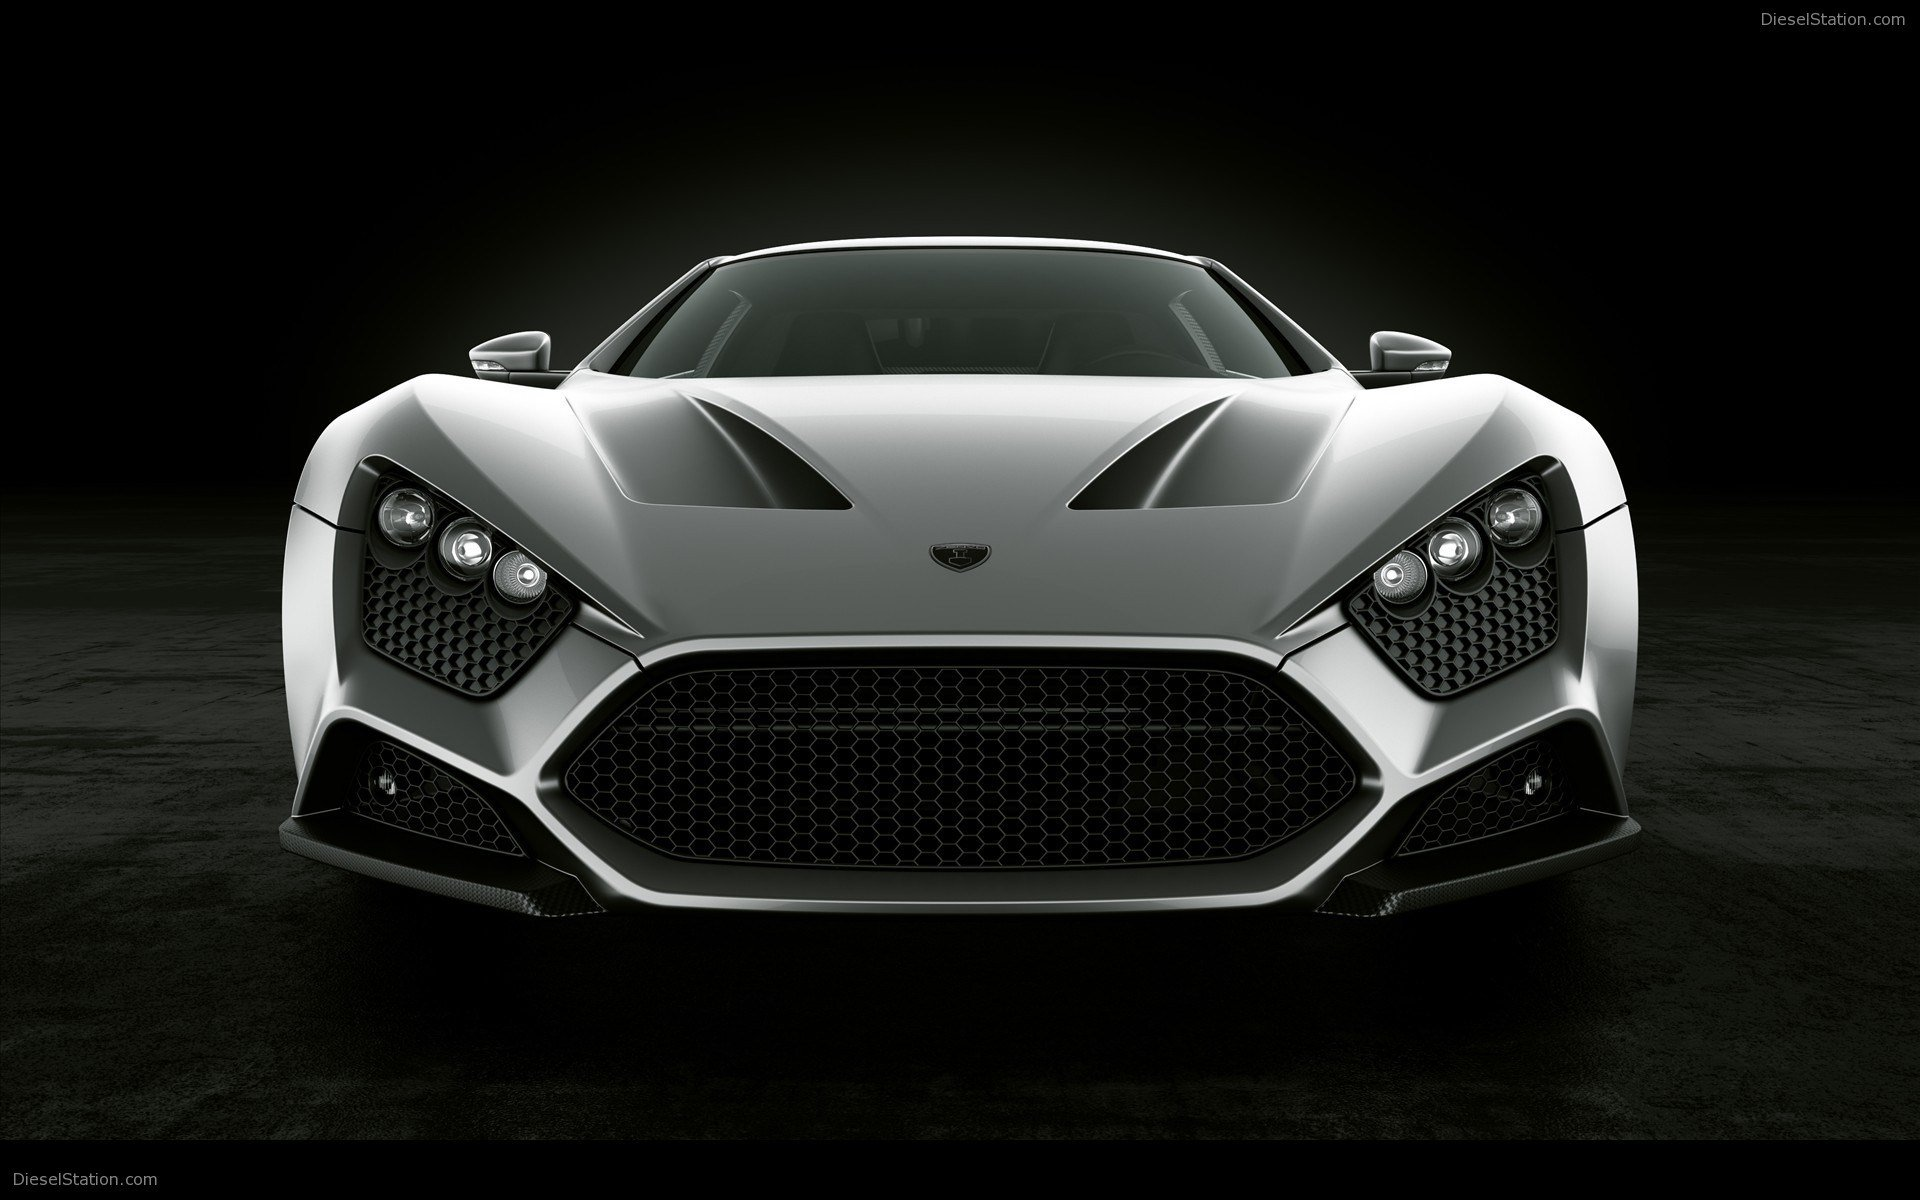 New Zenvo Devon St1 Widescreen Exotic Car Wallpapers 20 Of 74 On This Month